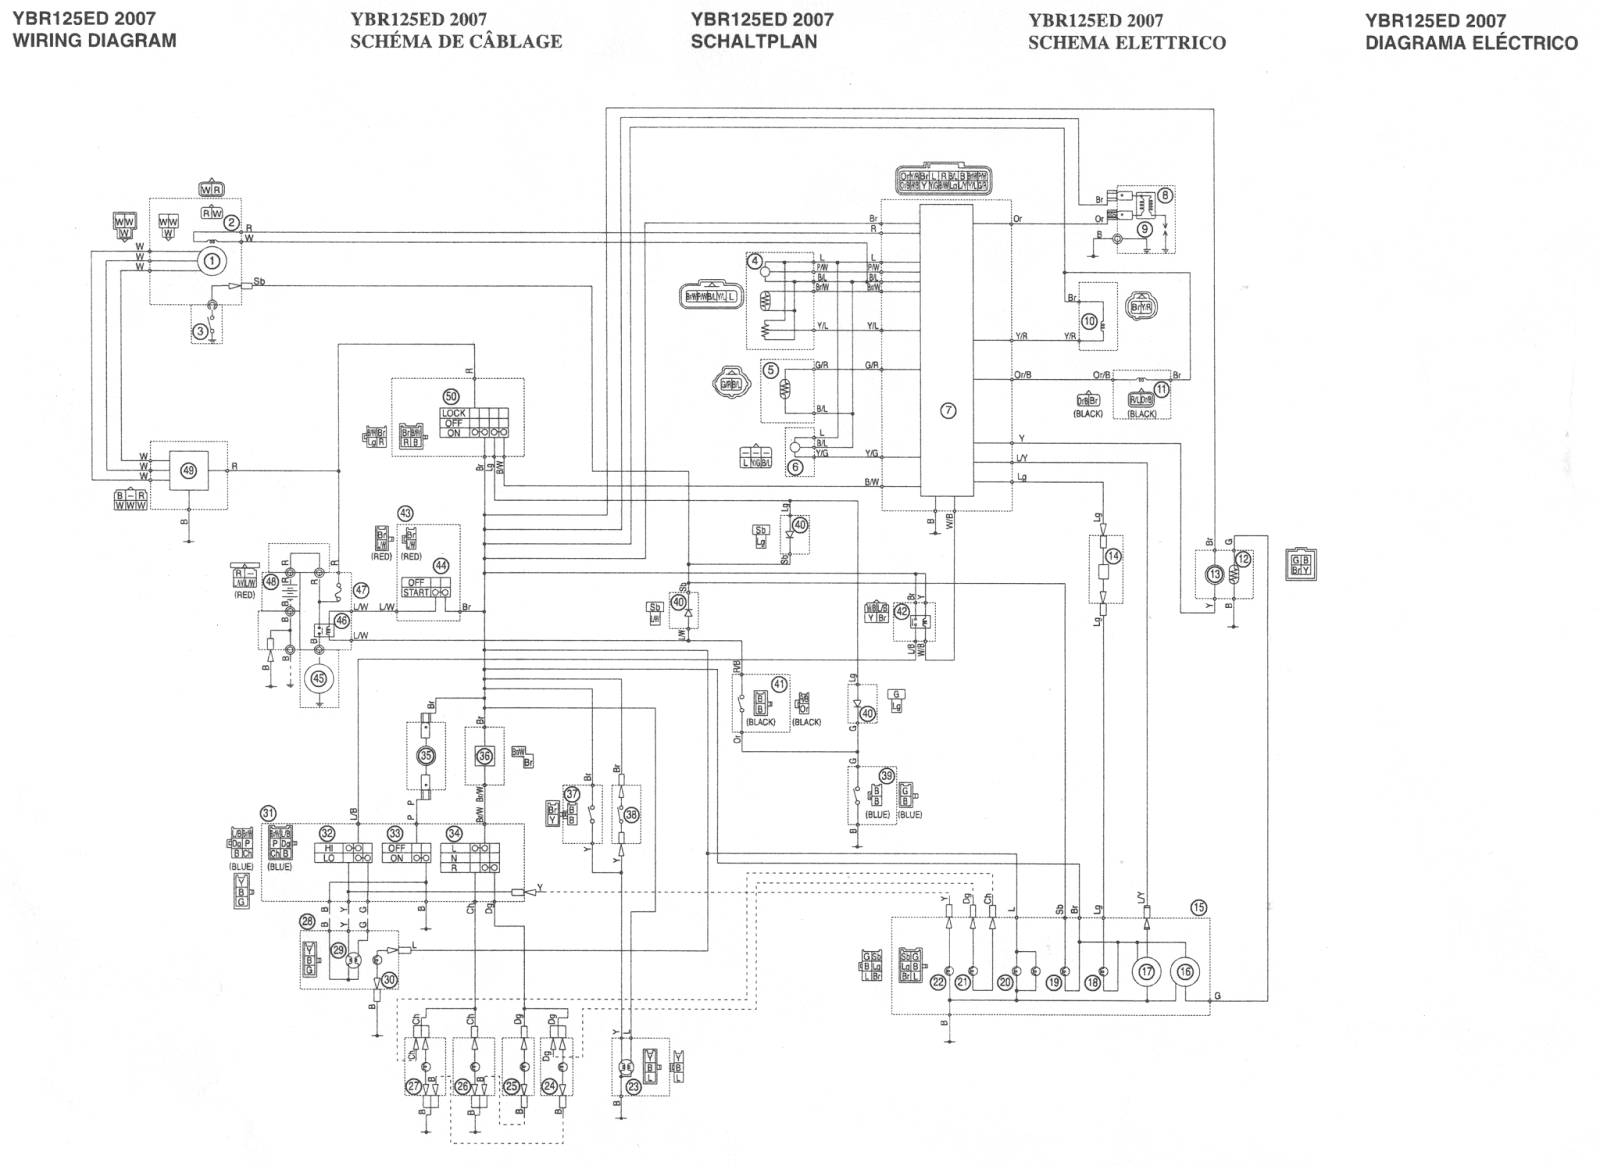 schema yamaha ybr 125 owner blog yamaha ybr 125 electrical system kokusan denki cdi wiring diagram at aneh.co